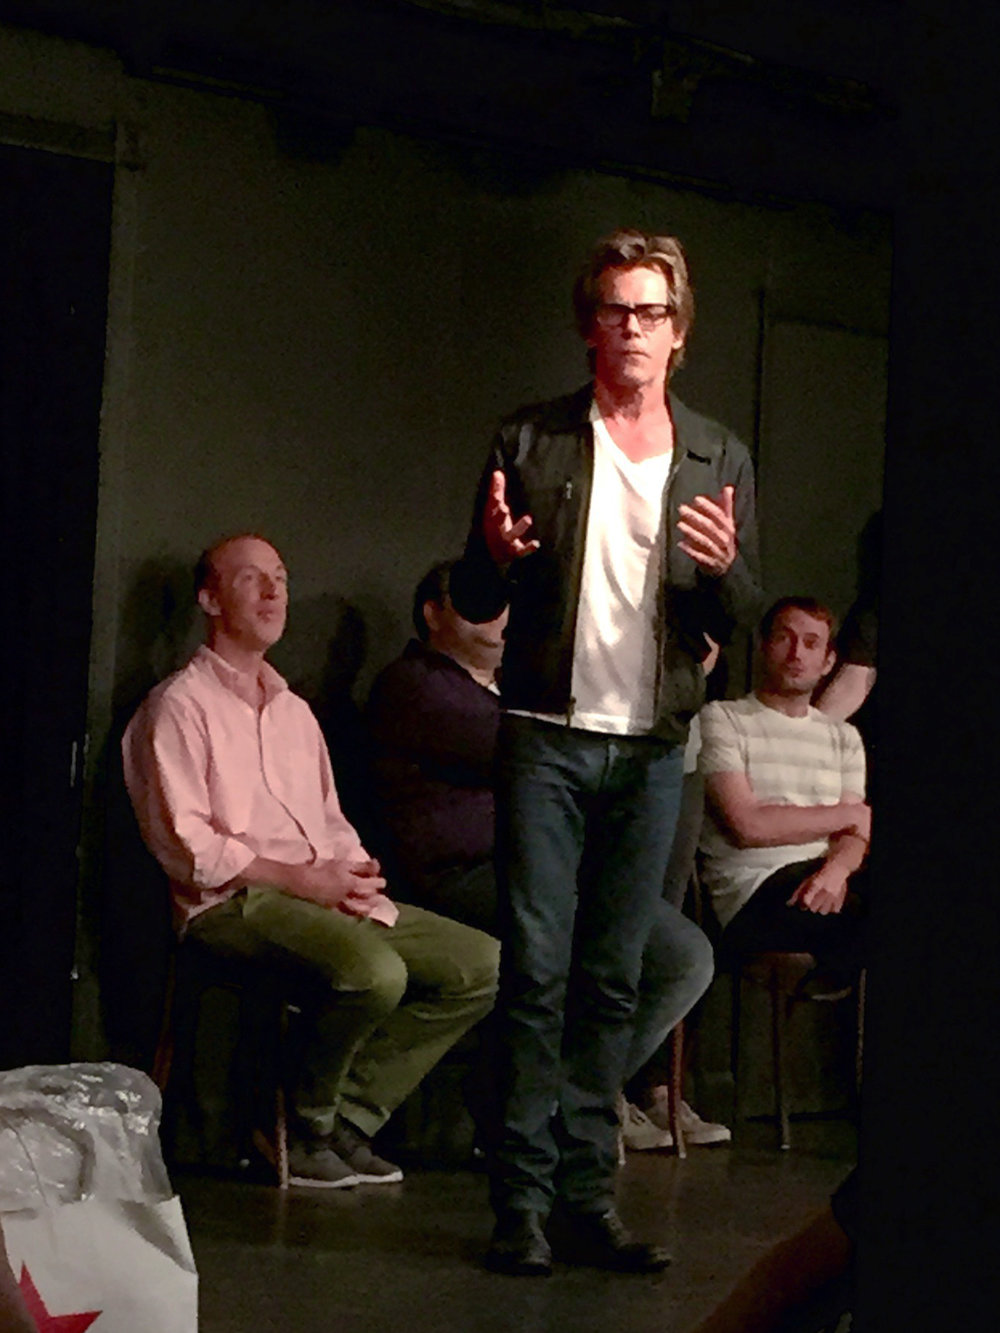 Monologist: Kevin Bacon